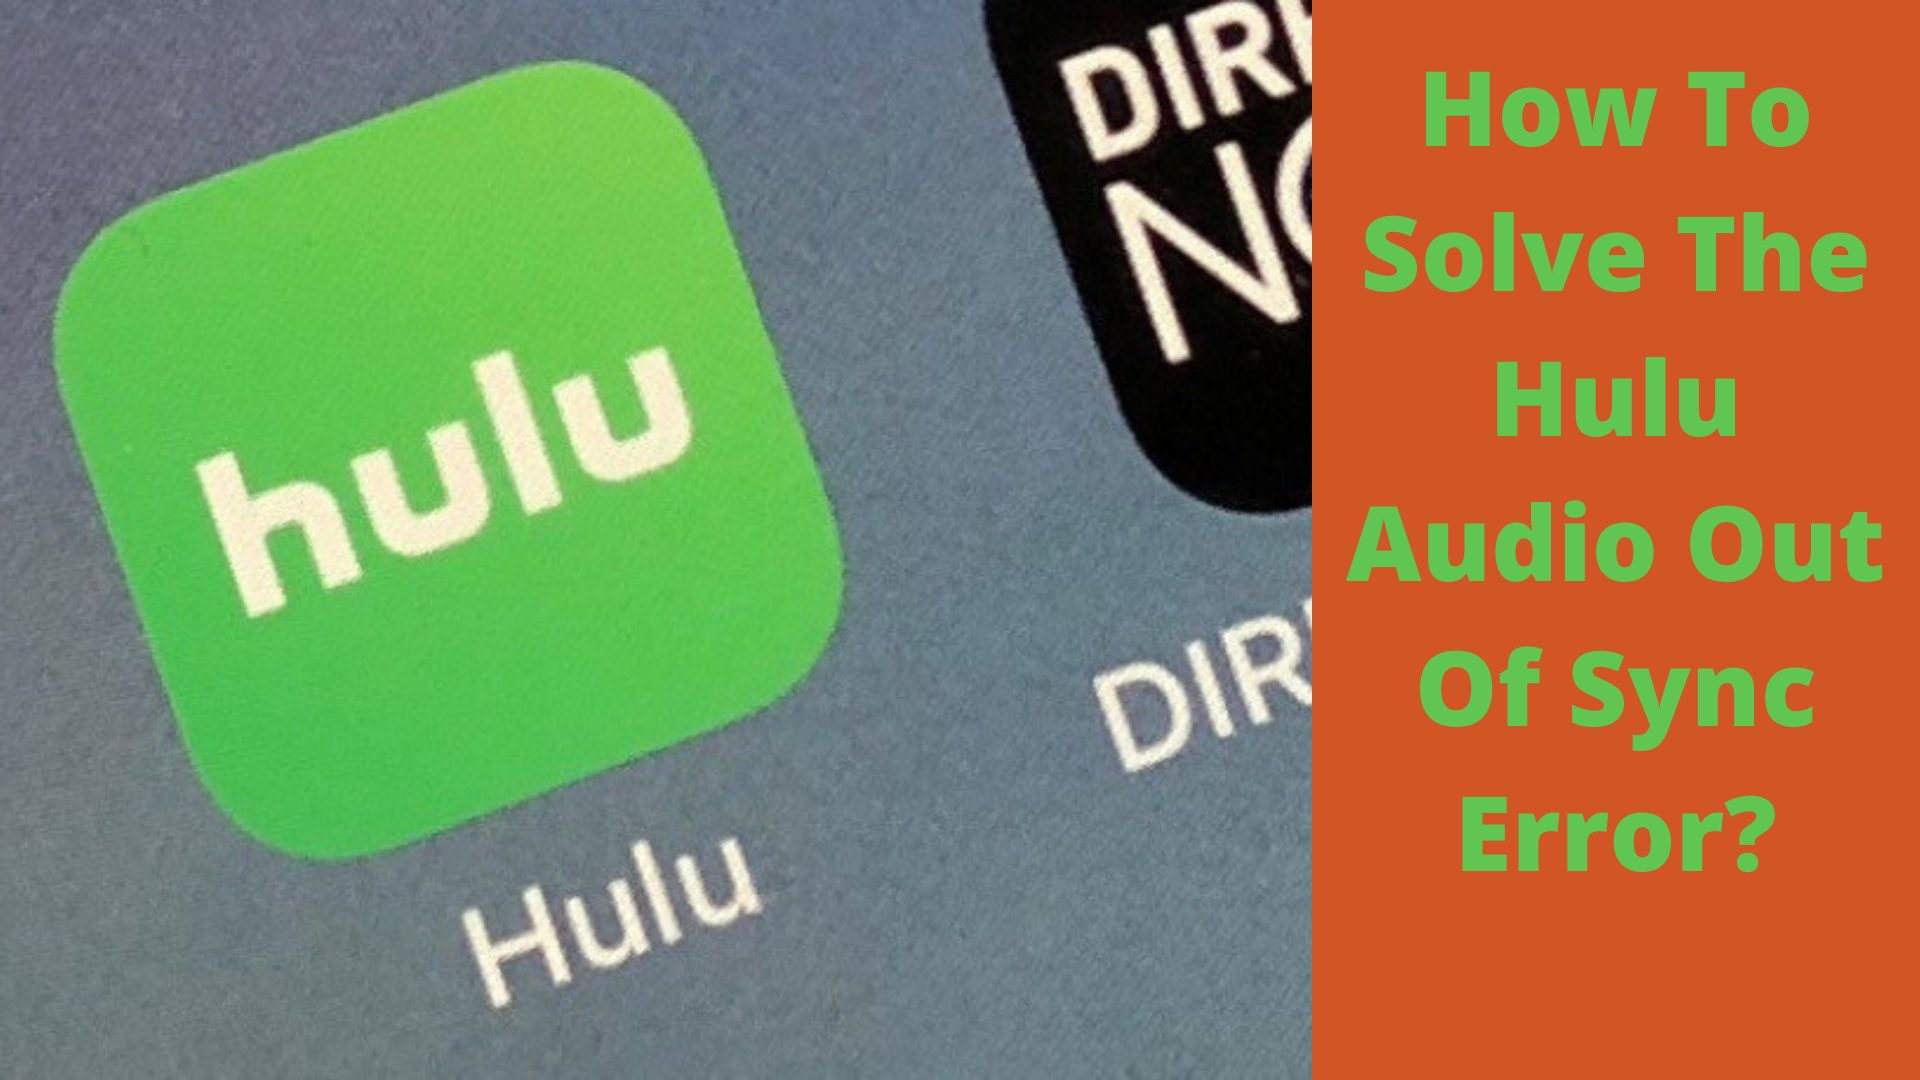 Hulu Audio out of Sync Error